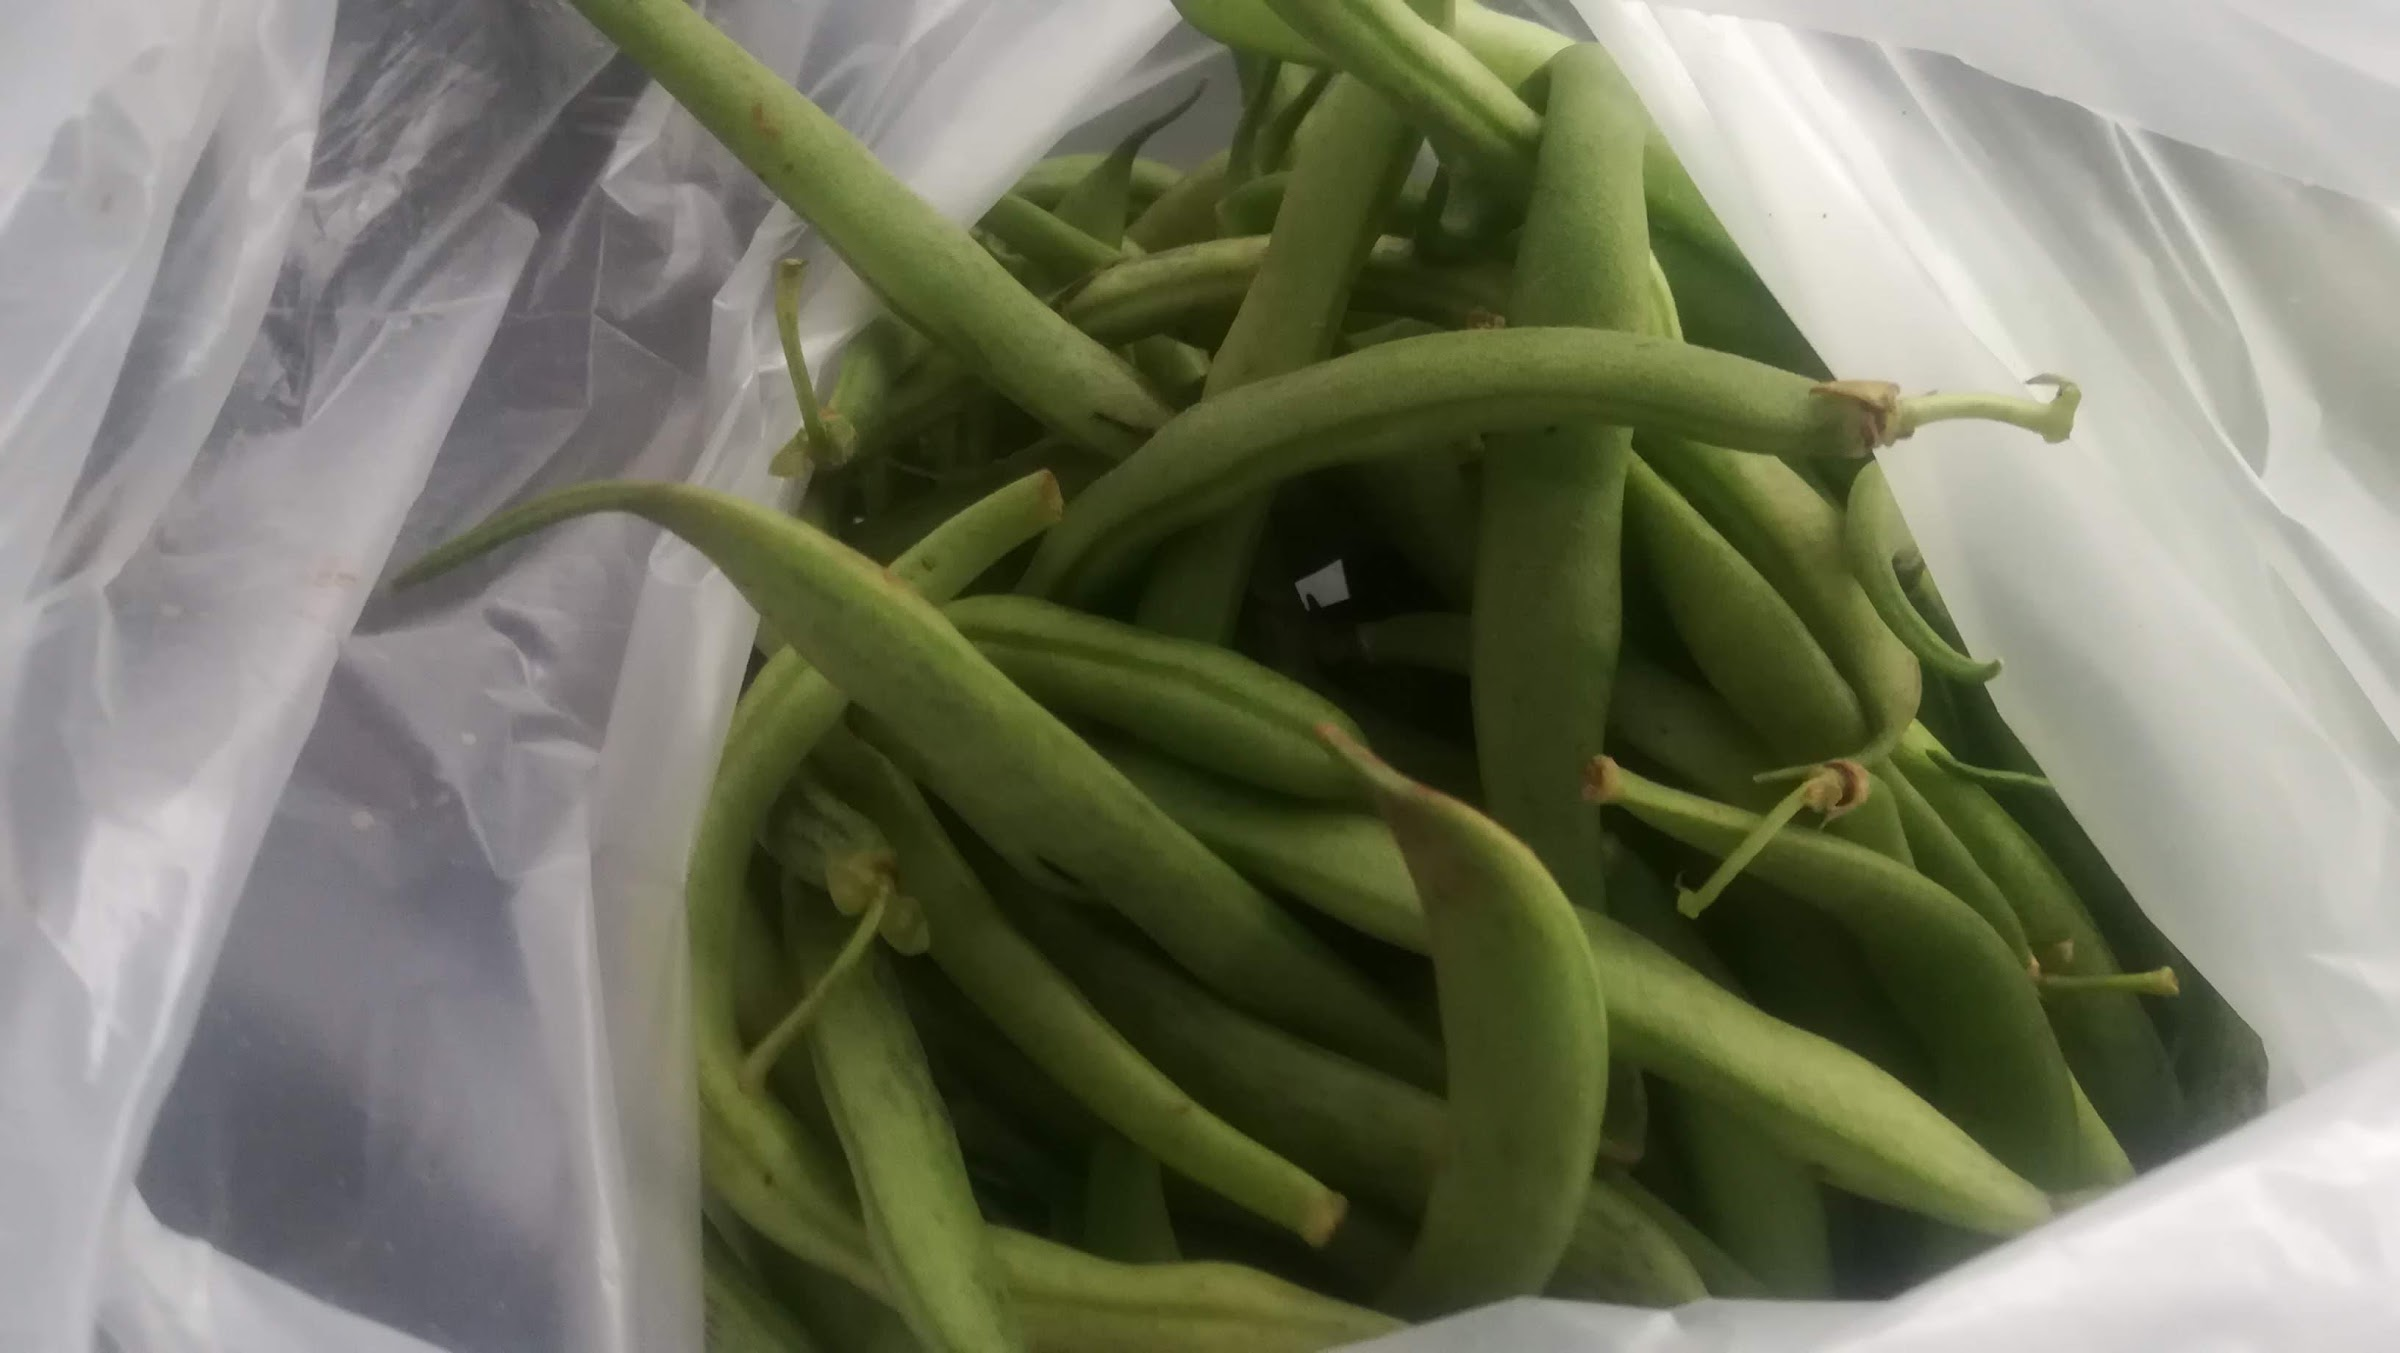 Not an exotic vegetable but still very nice: fresh green beans!